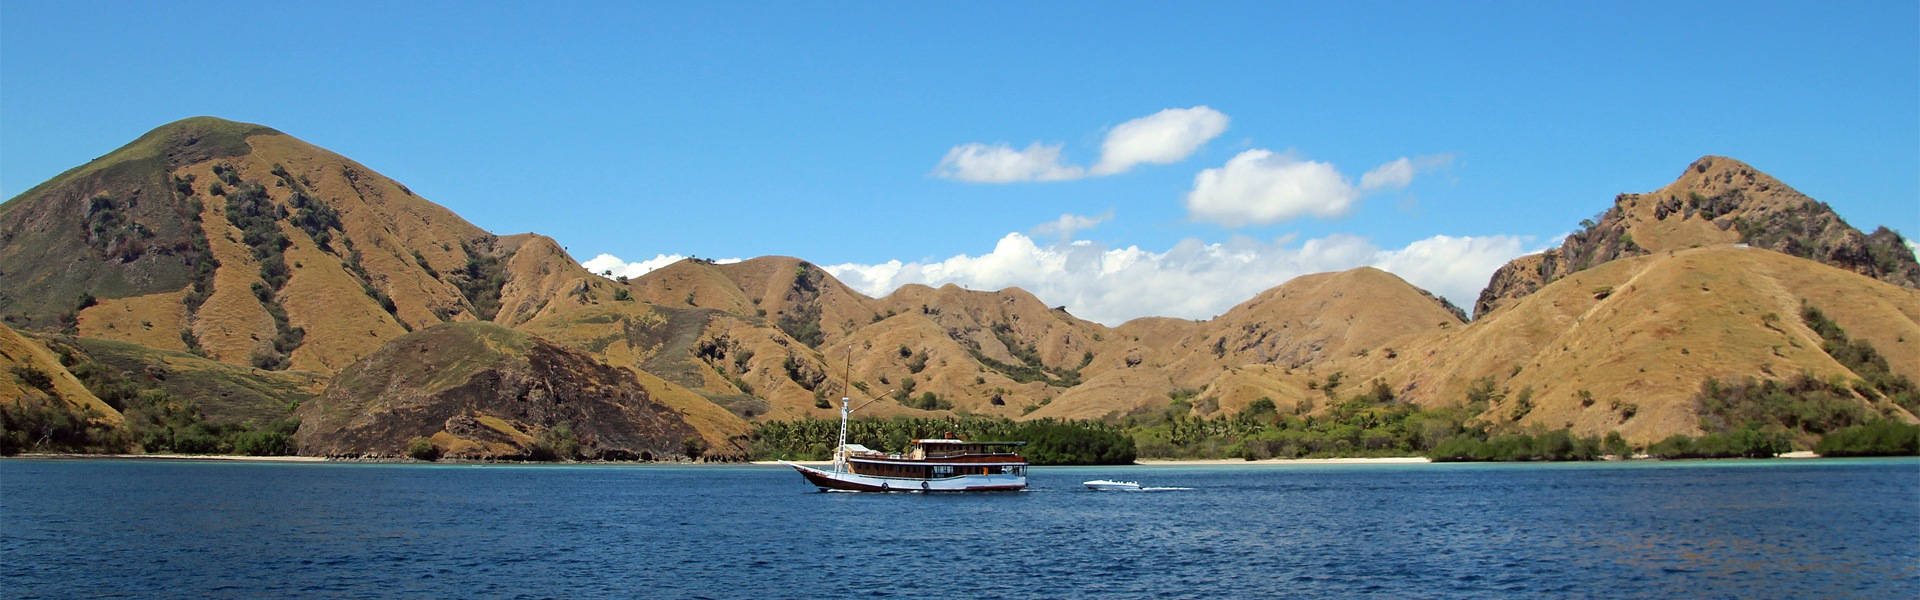 Local charter boat in the Komodo National Park, Indonesia